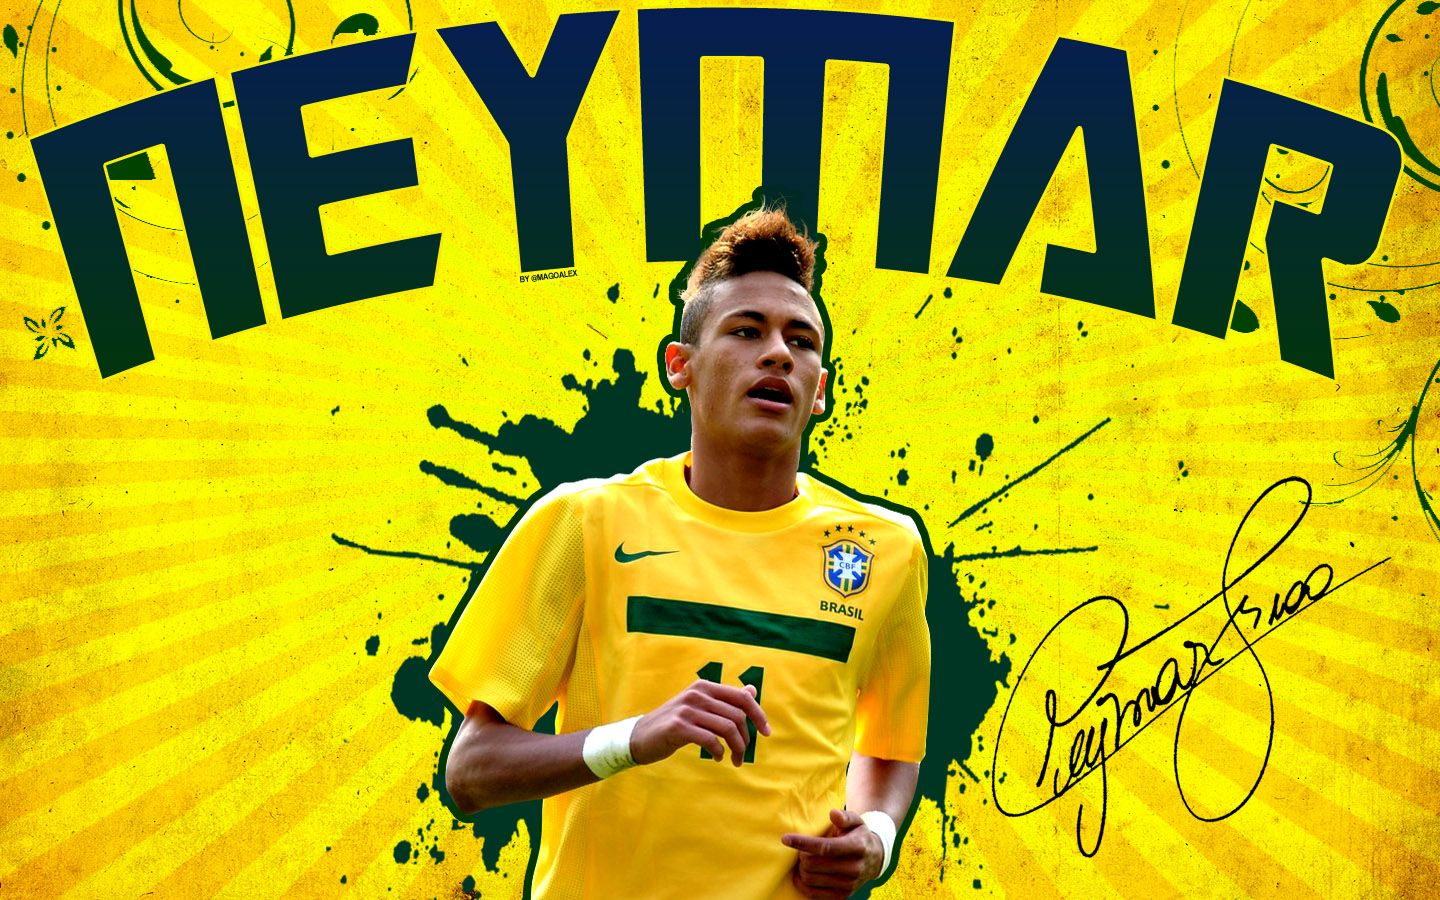 neymar jr. / brasil | neymar jr. | pinterest | neymar jr and neymar